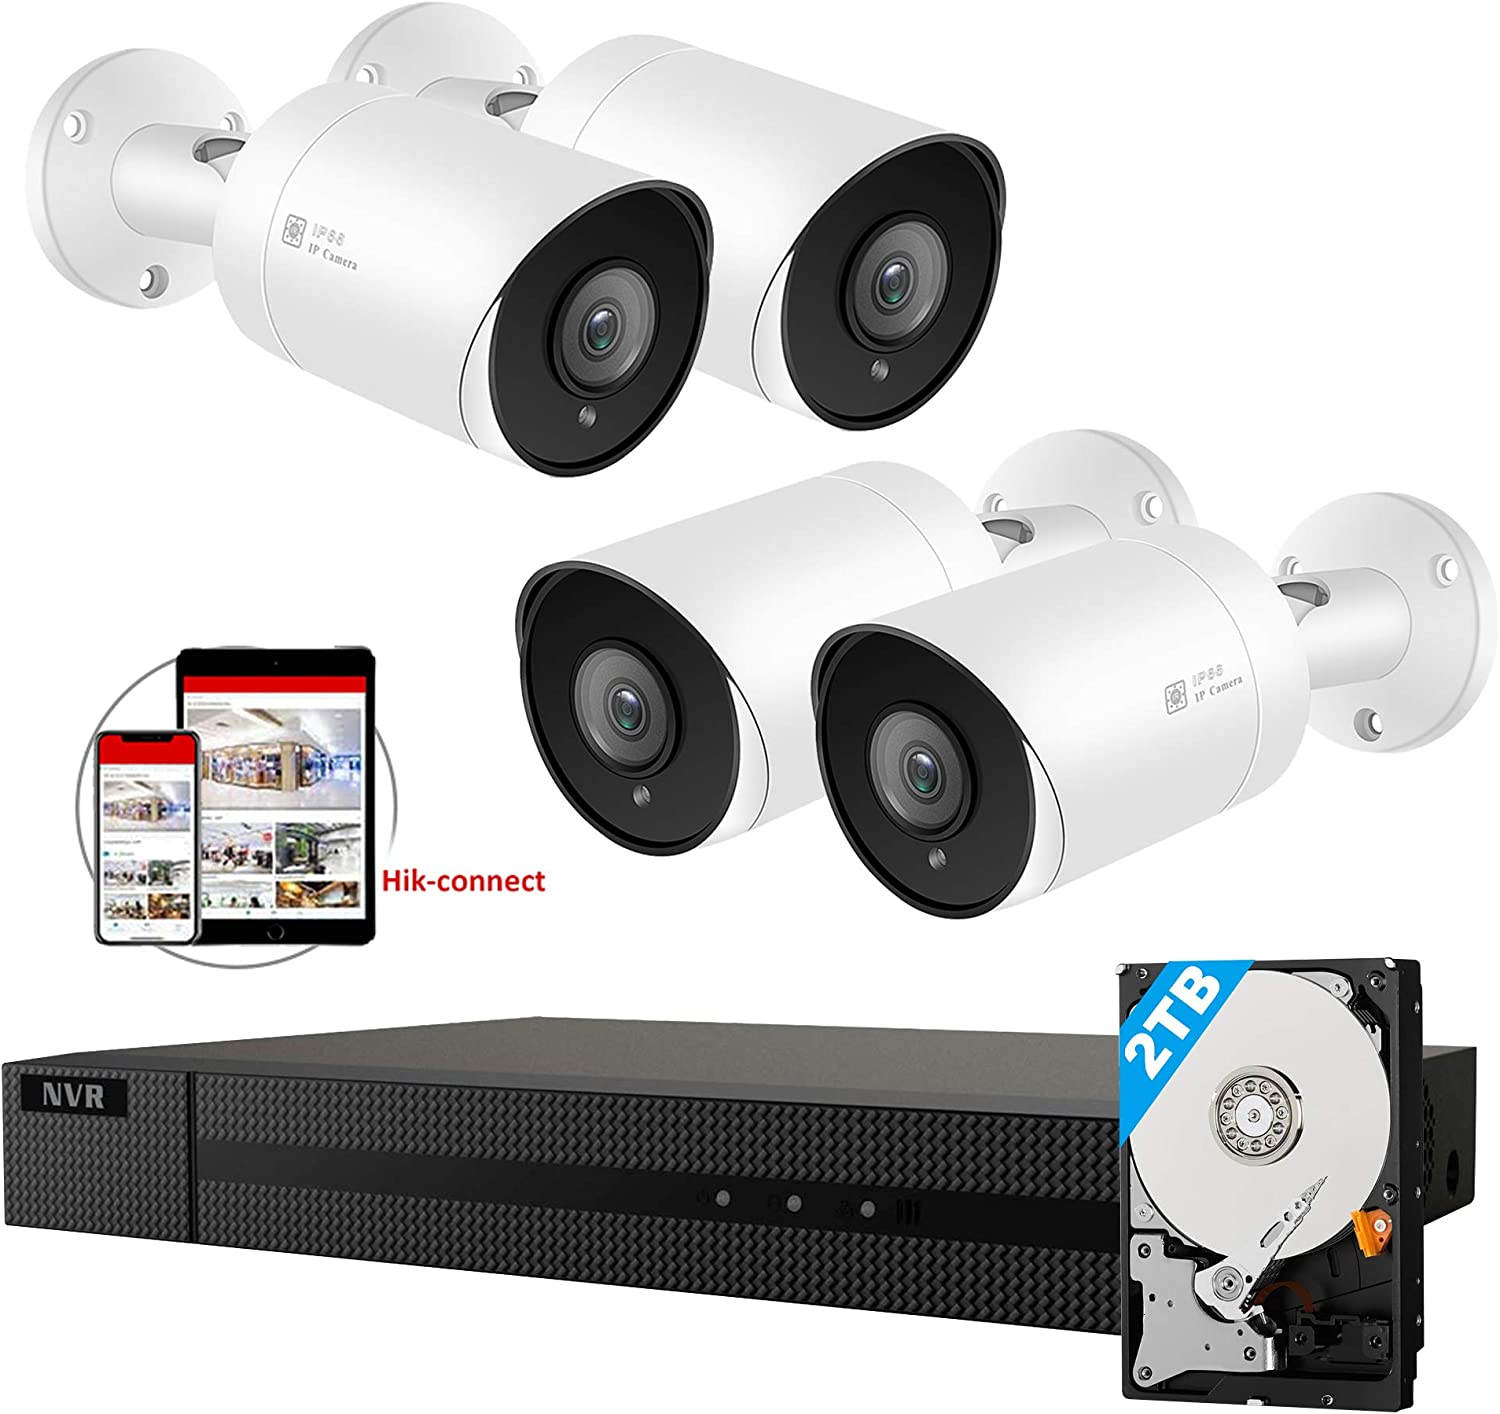 Anpviz 5MP IP POE Security Camera System, 8CH 4K H.265 NVR with 2TB HDD with (4) 5MP Outdoor IP POE Bullet Cameras Home Security System with Audio, Weatherproof, 98ft Night Vision IVMS4200 Hik-Connect